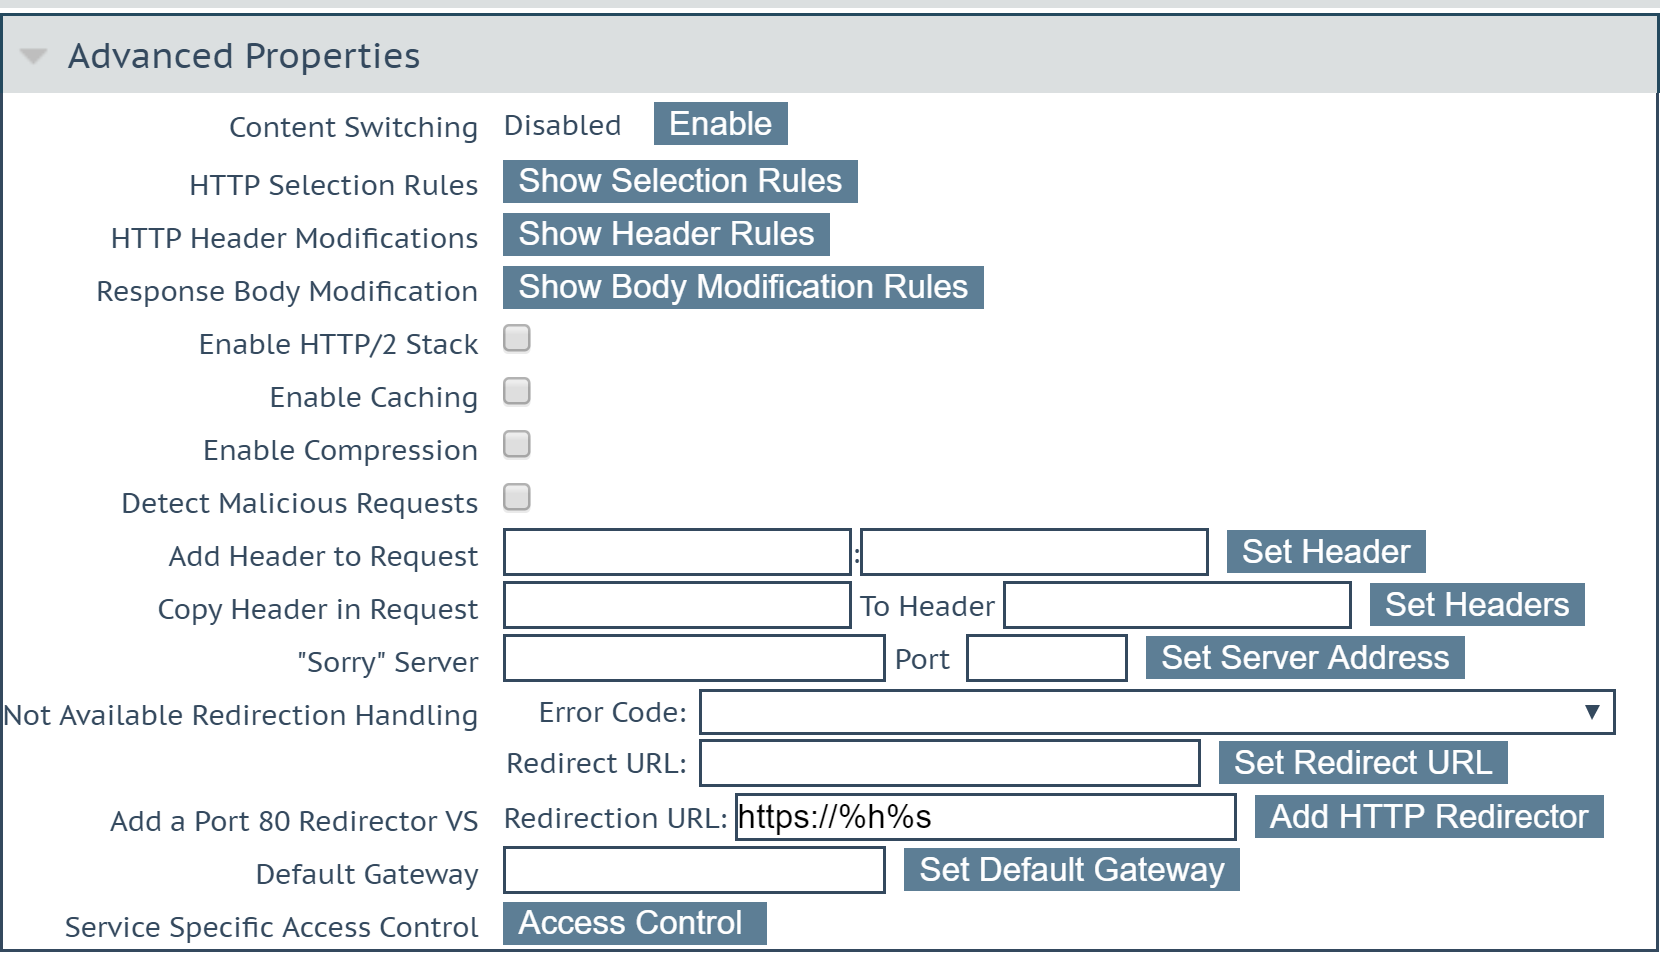 Kemp LoadMaster - Enable Content Switching